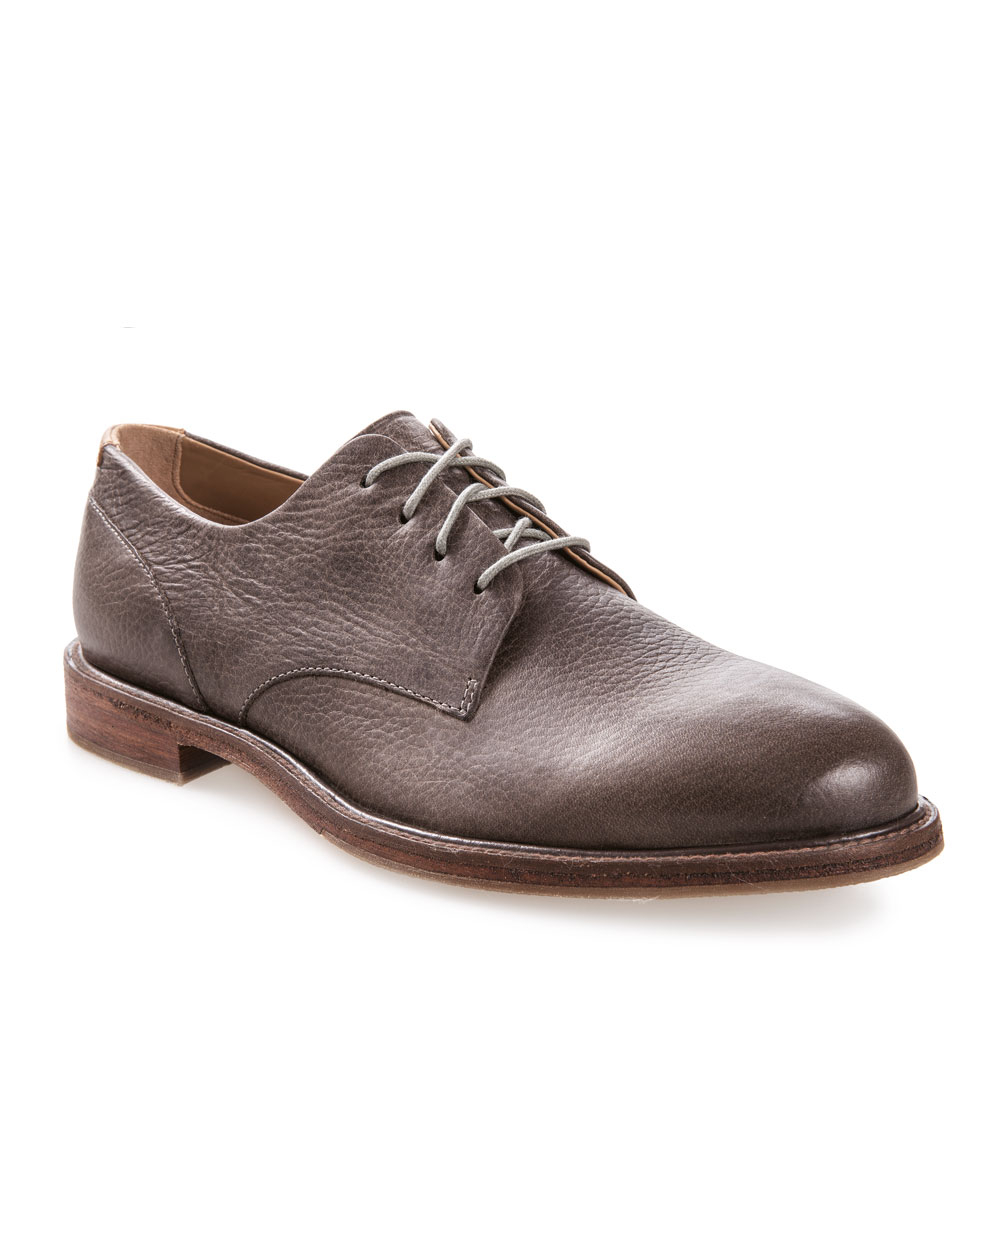 J Shoes William Cow Leather Derby (paloma)